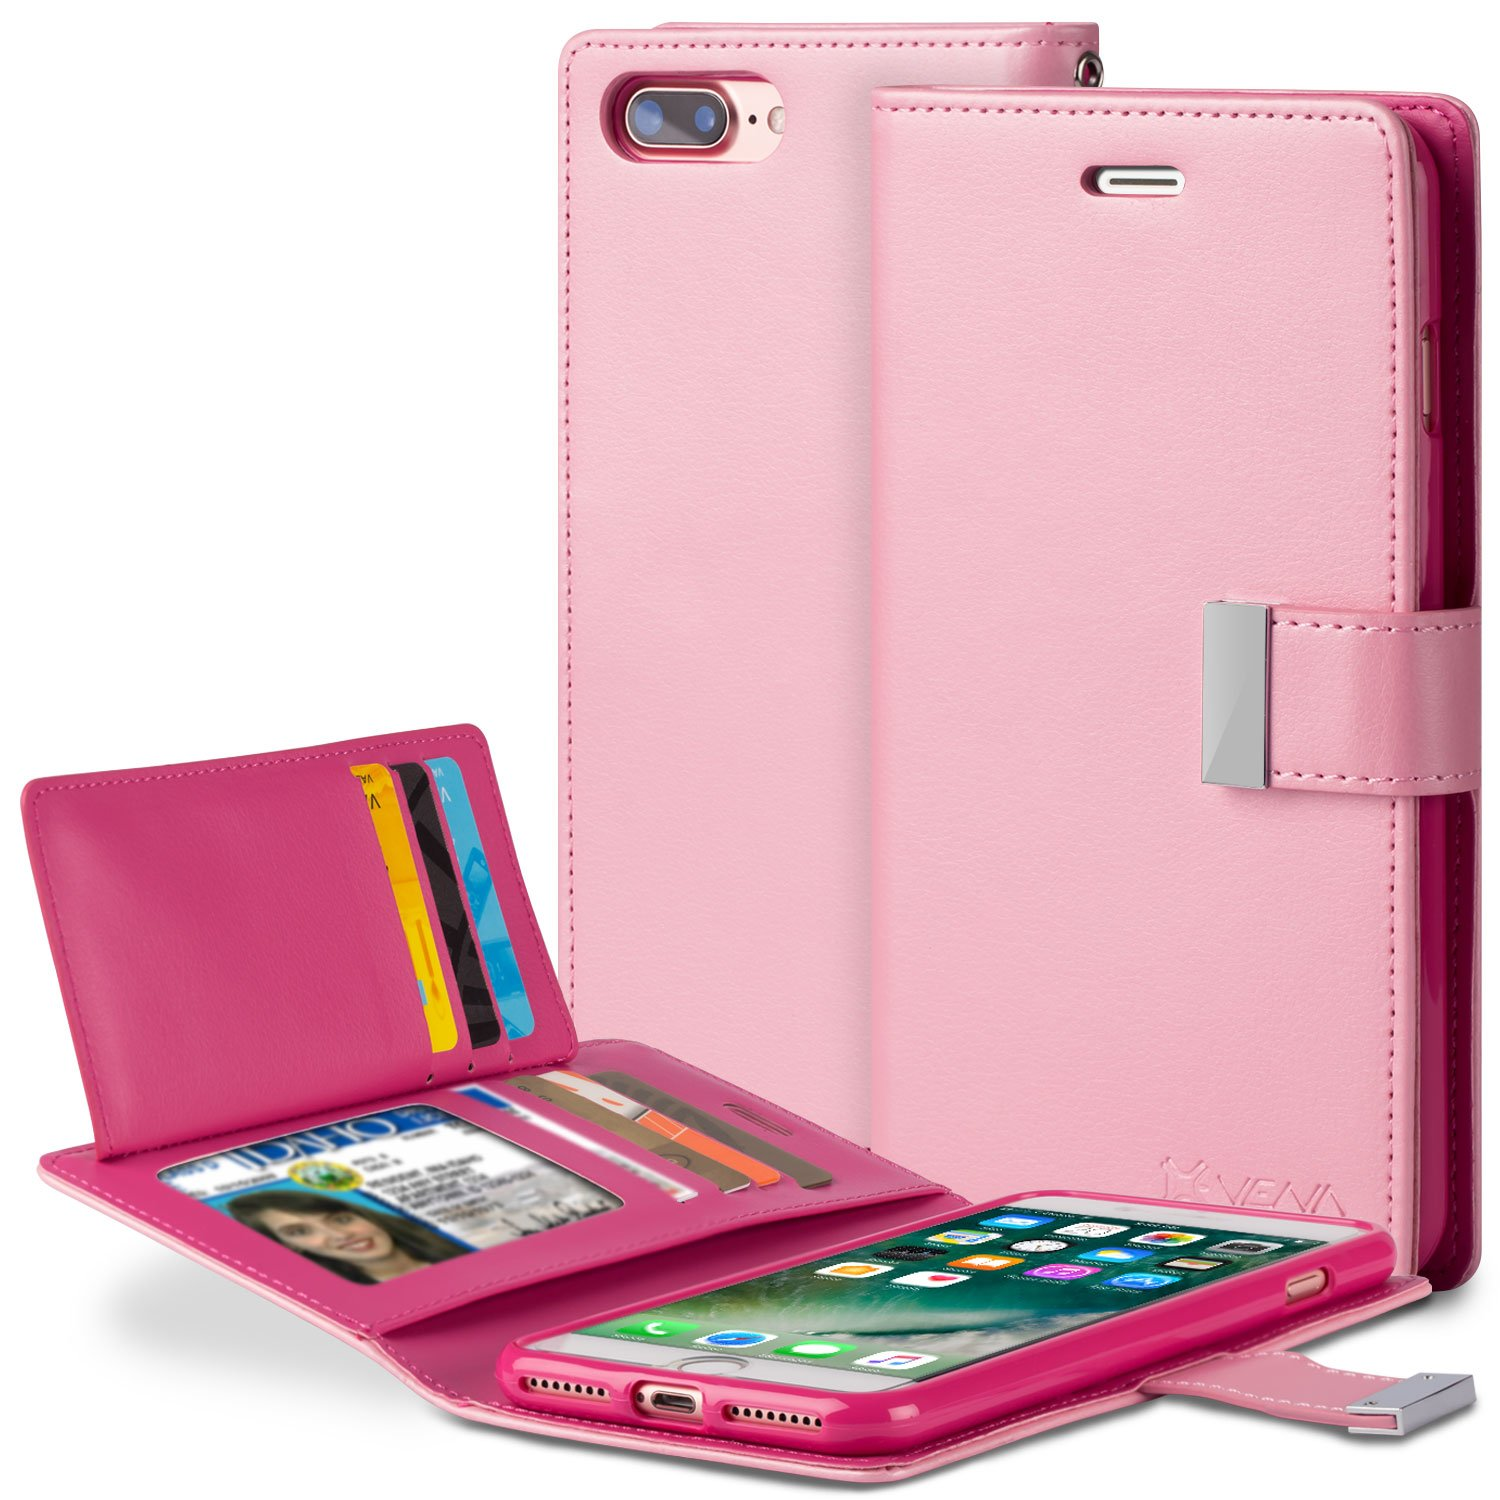 iPhone 8 Plus Wallet Case, VENA [vDiary] Slim Tri-Fold Leather Wallet Case with Stand Flip Cover for Apple iPhone 8 Plus / 7 Plus (5.5'') - Light Pink / Hot Pink